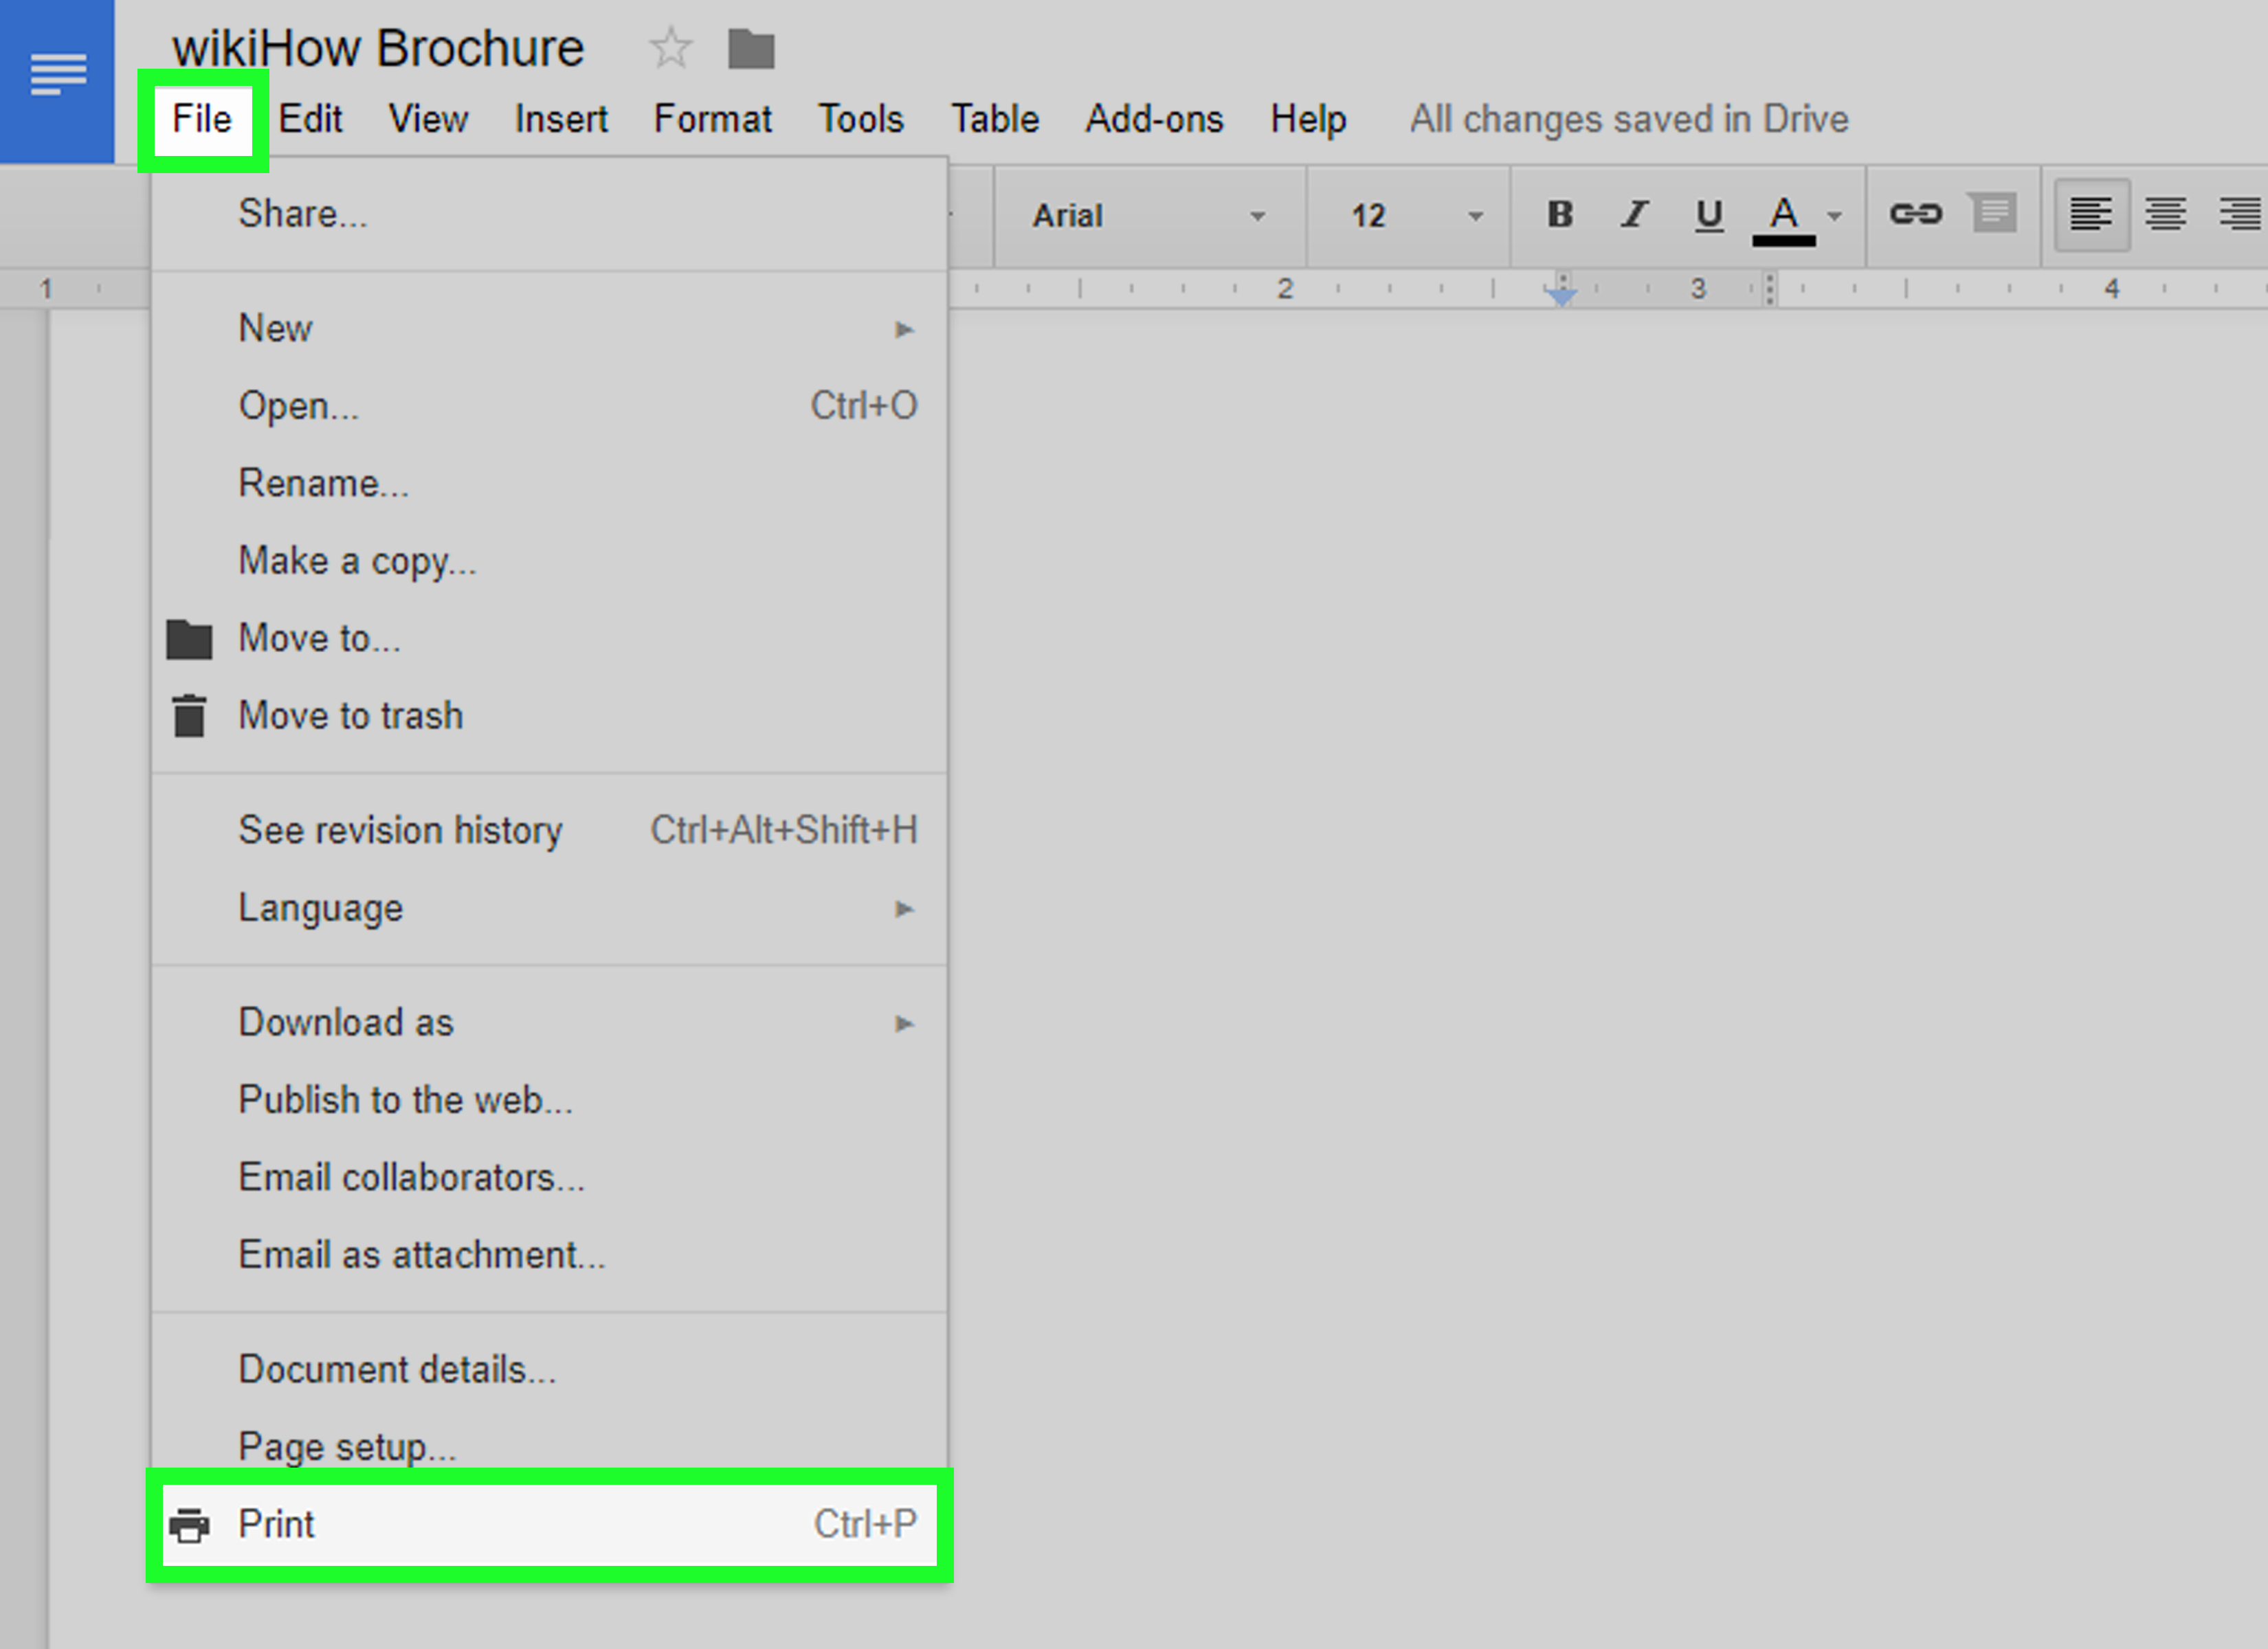 Brochure Template for Google Docs Awesome How to Make A Brochure Using Google Docs with